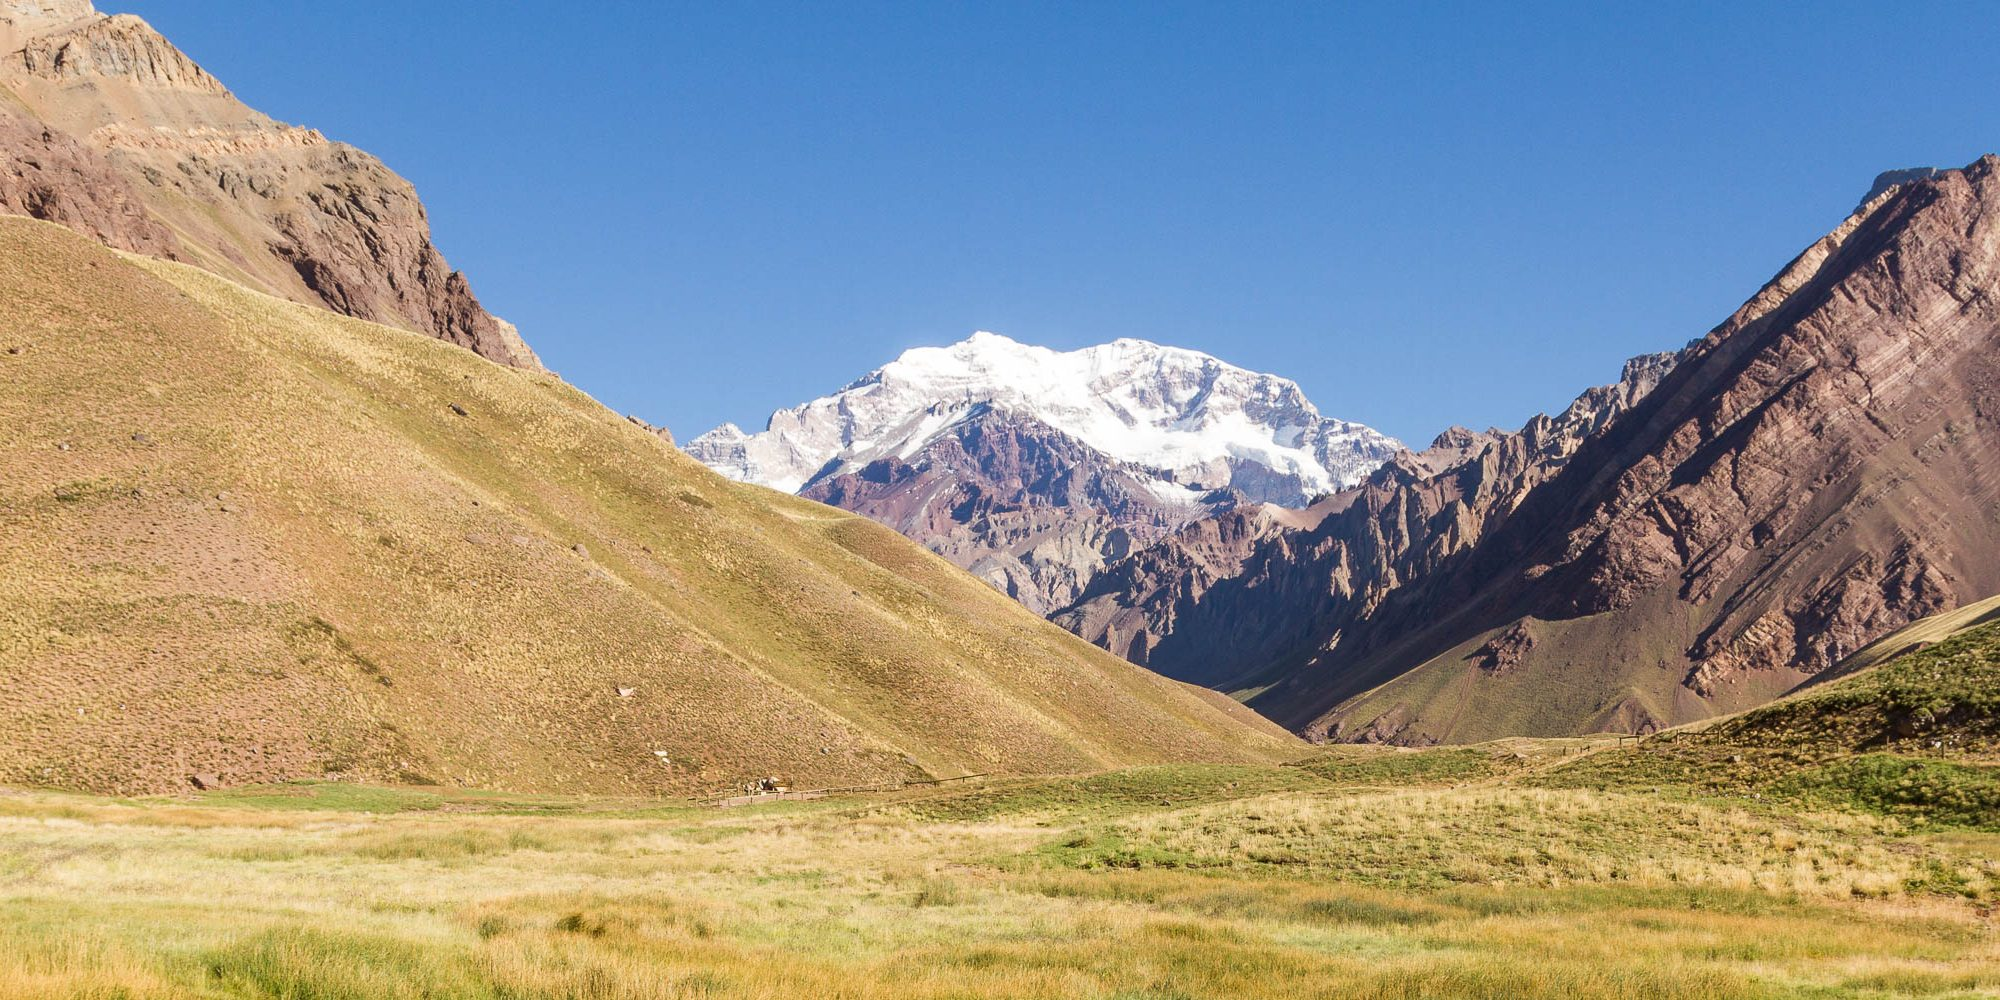 View of Aconcagua from the bottom of the trail to base camp